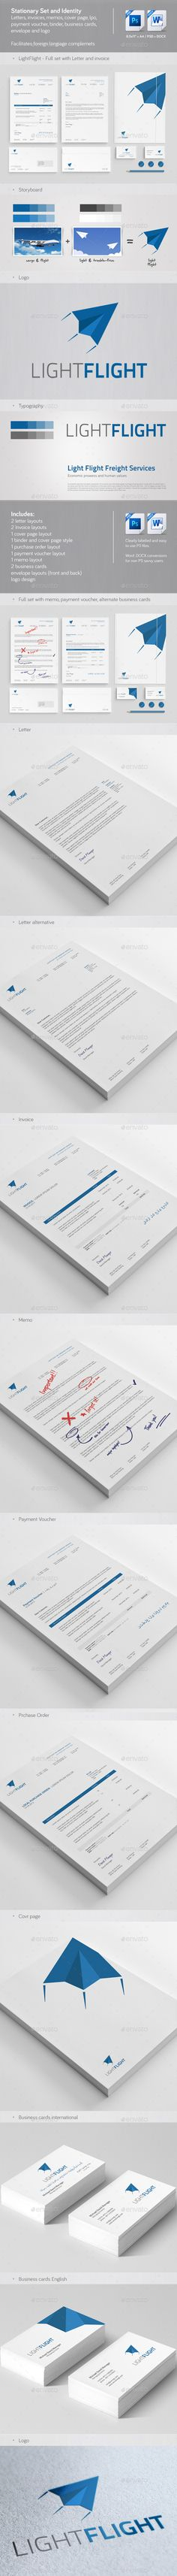 Clean & Modern Stationery, Invoice and Identity 2 Corporate Stationary, Corporate Identity, Cover Page Template, Envelope Design, Stationery Design, Cover Pages, Business Card Design, Letterhead Logo, Logo Design